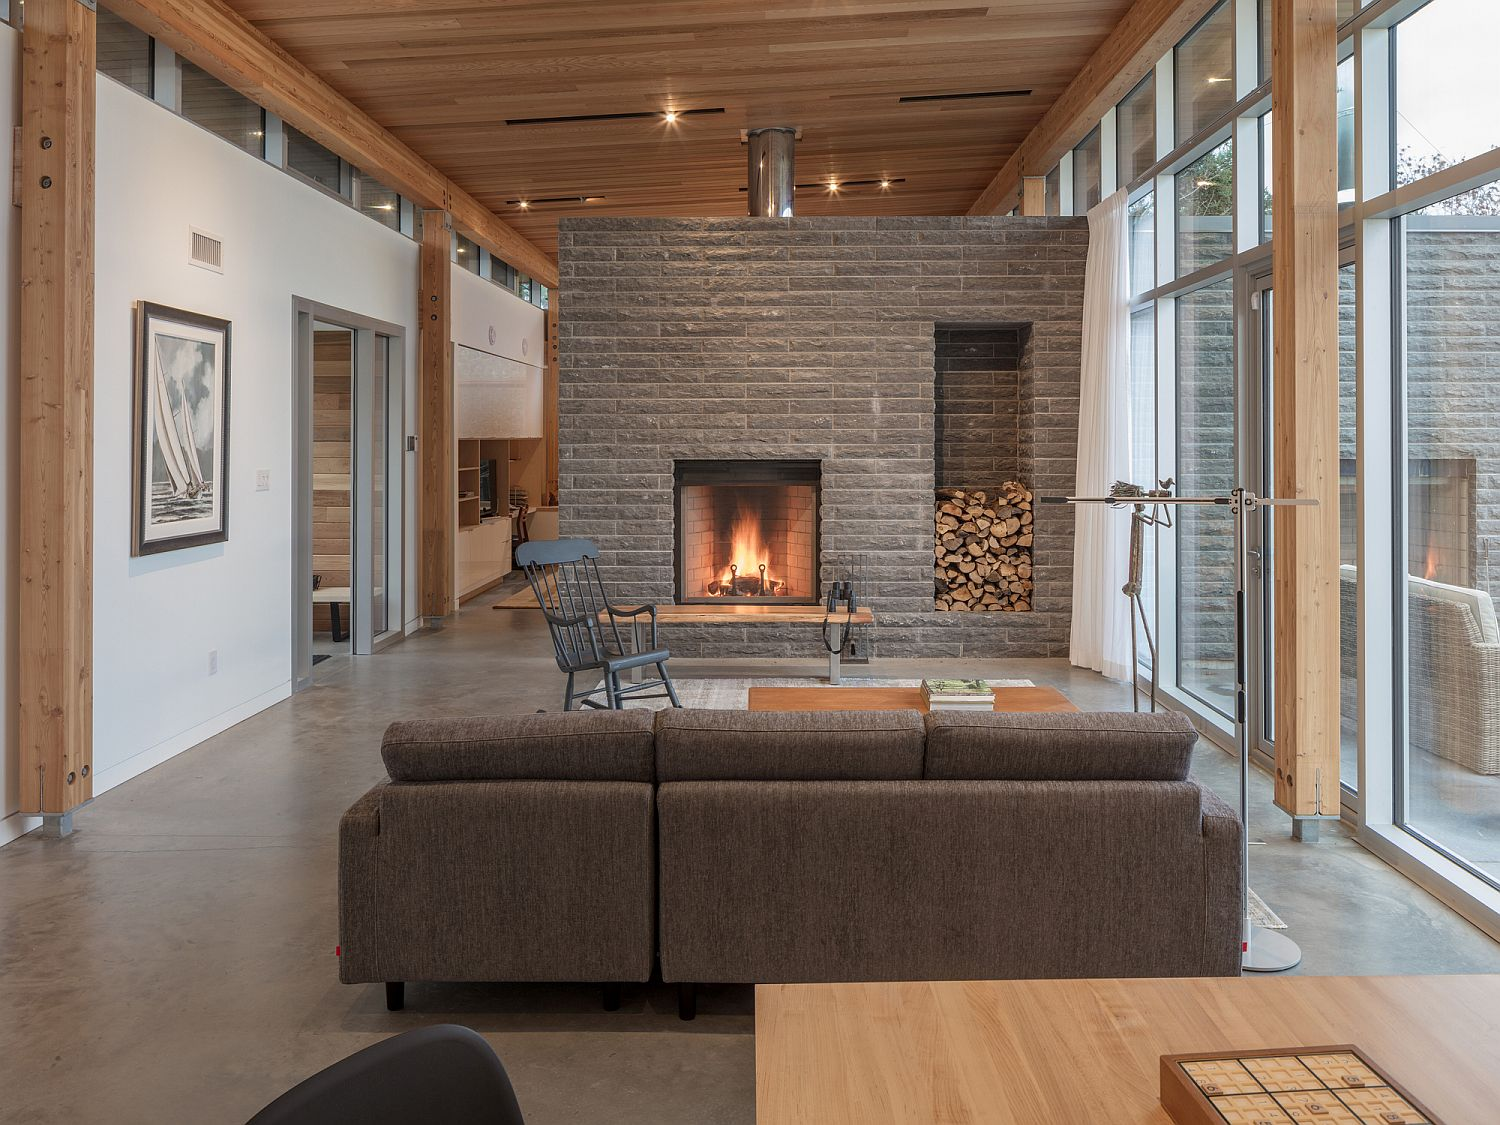 Stone fireplace becomes the focal point of the stunning living room with ocean views